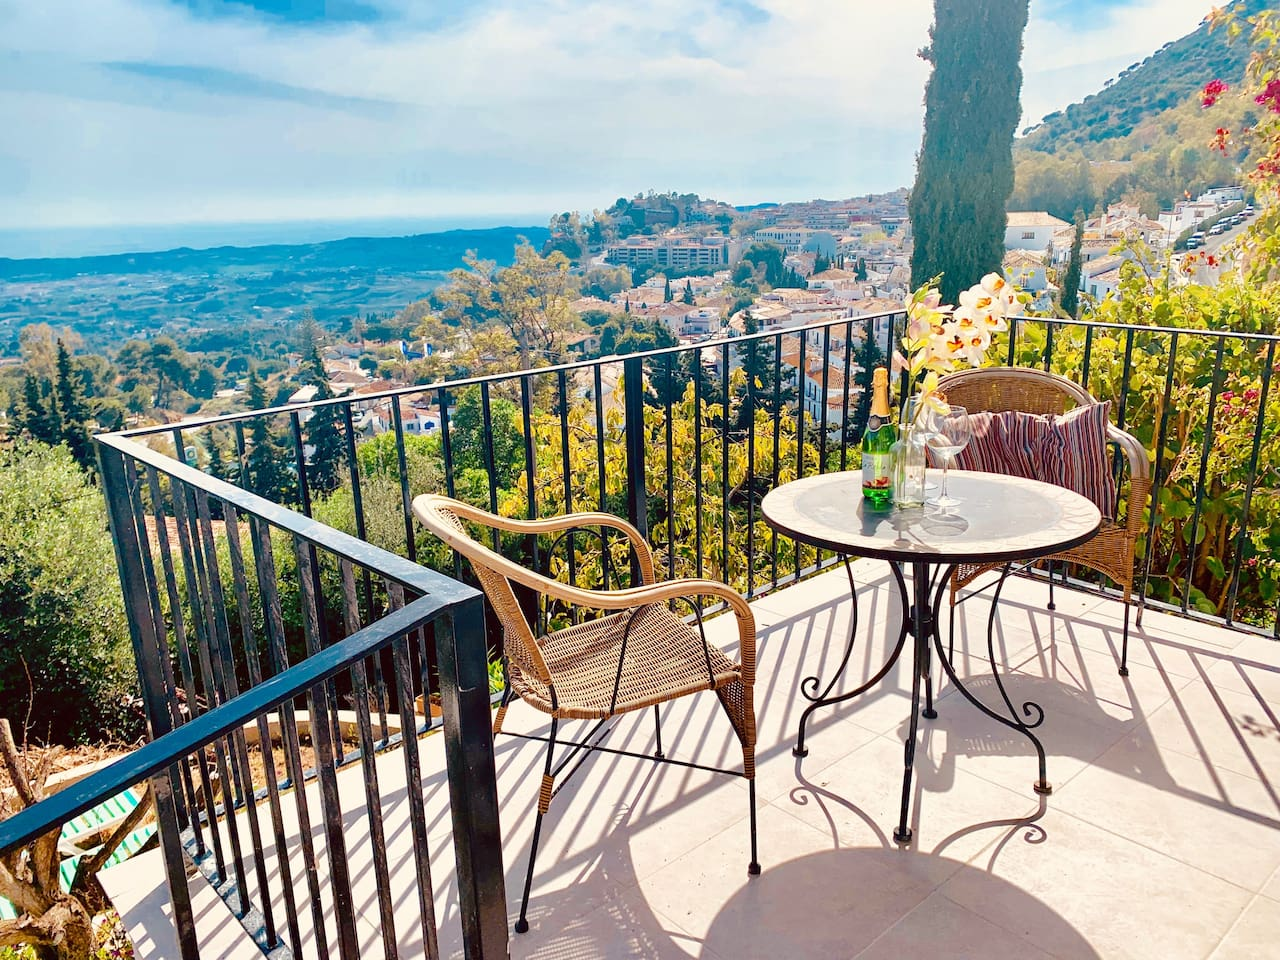 You are five minutes walk to Mijas Pueblo. There is a shortcut from the garden ans stairs between private villas to 50 plus retautants ans hopping.